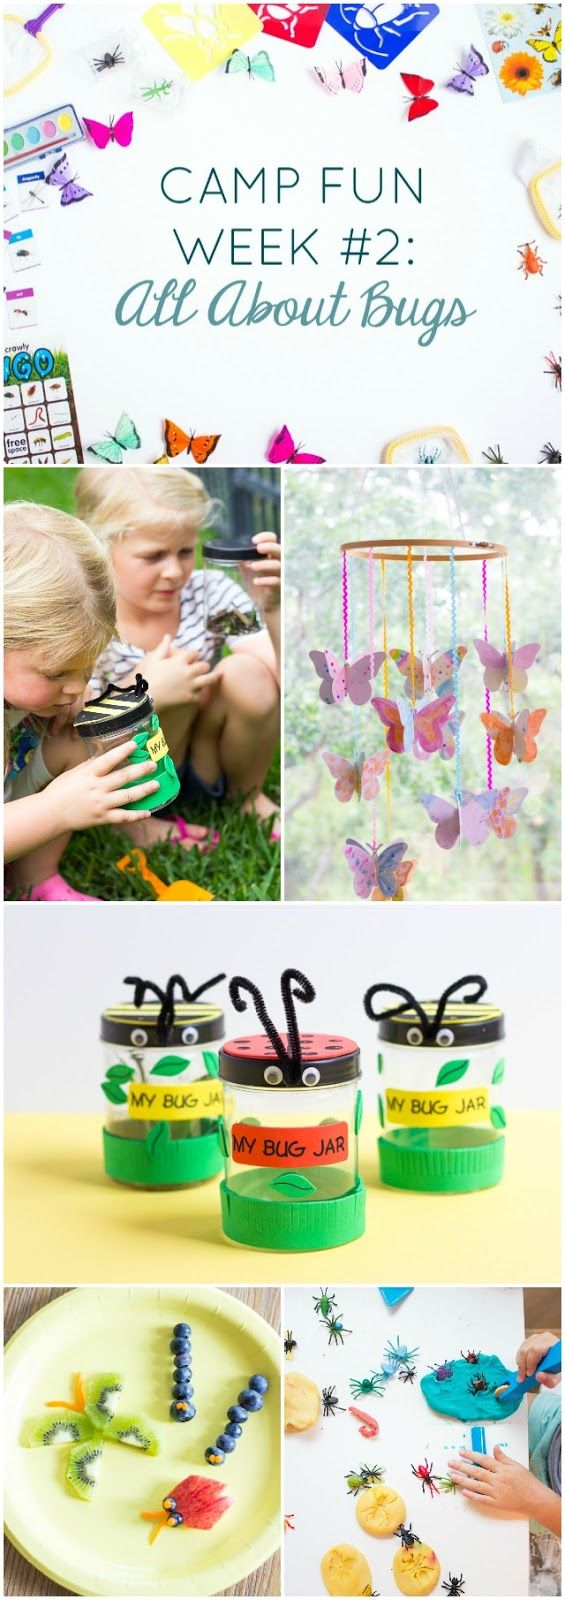 Camp Fun: All About Bugs! Have summer camp at home with these fun bug activities and bug crafts!